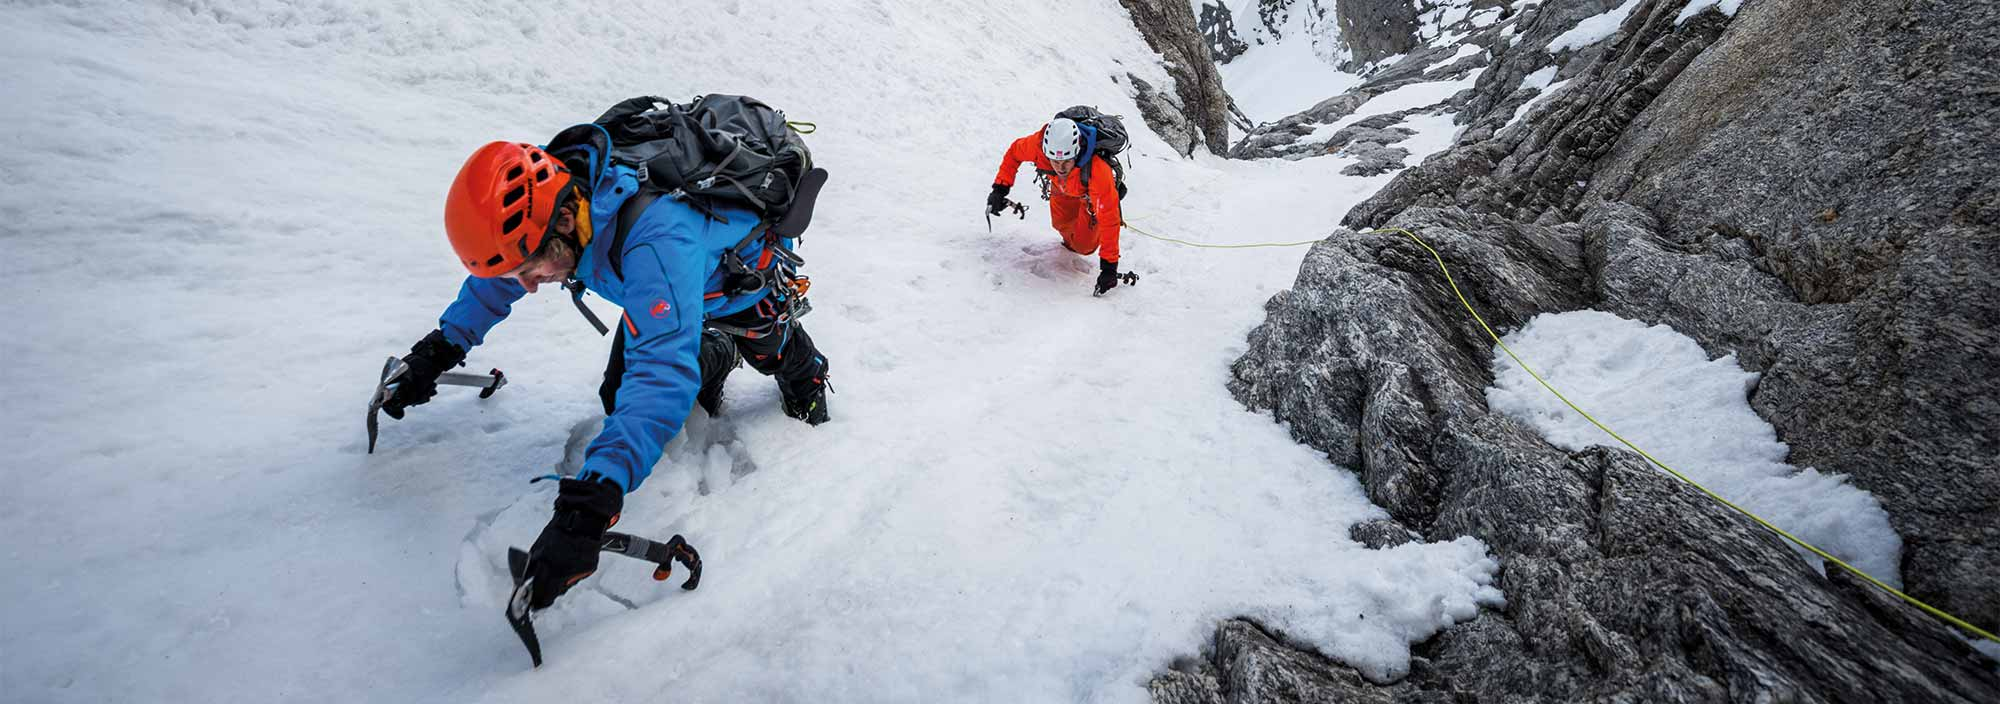 mammut extreme collectie